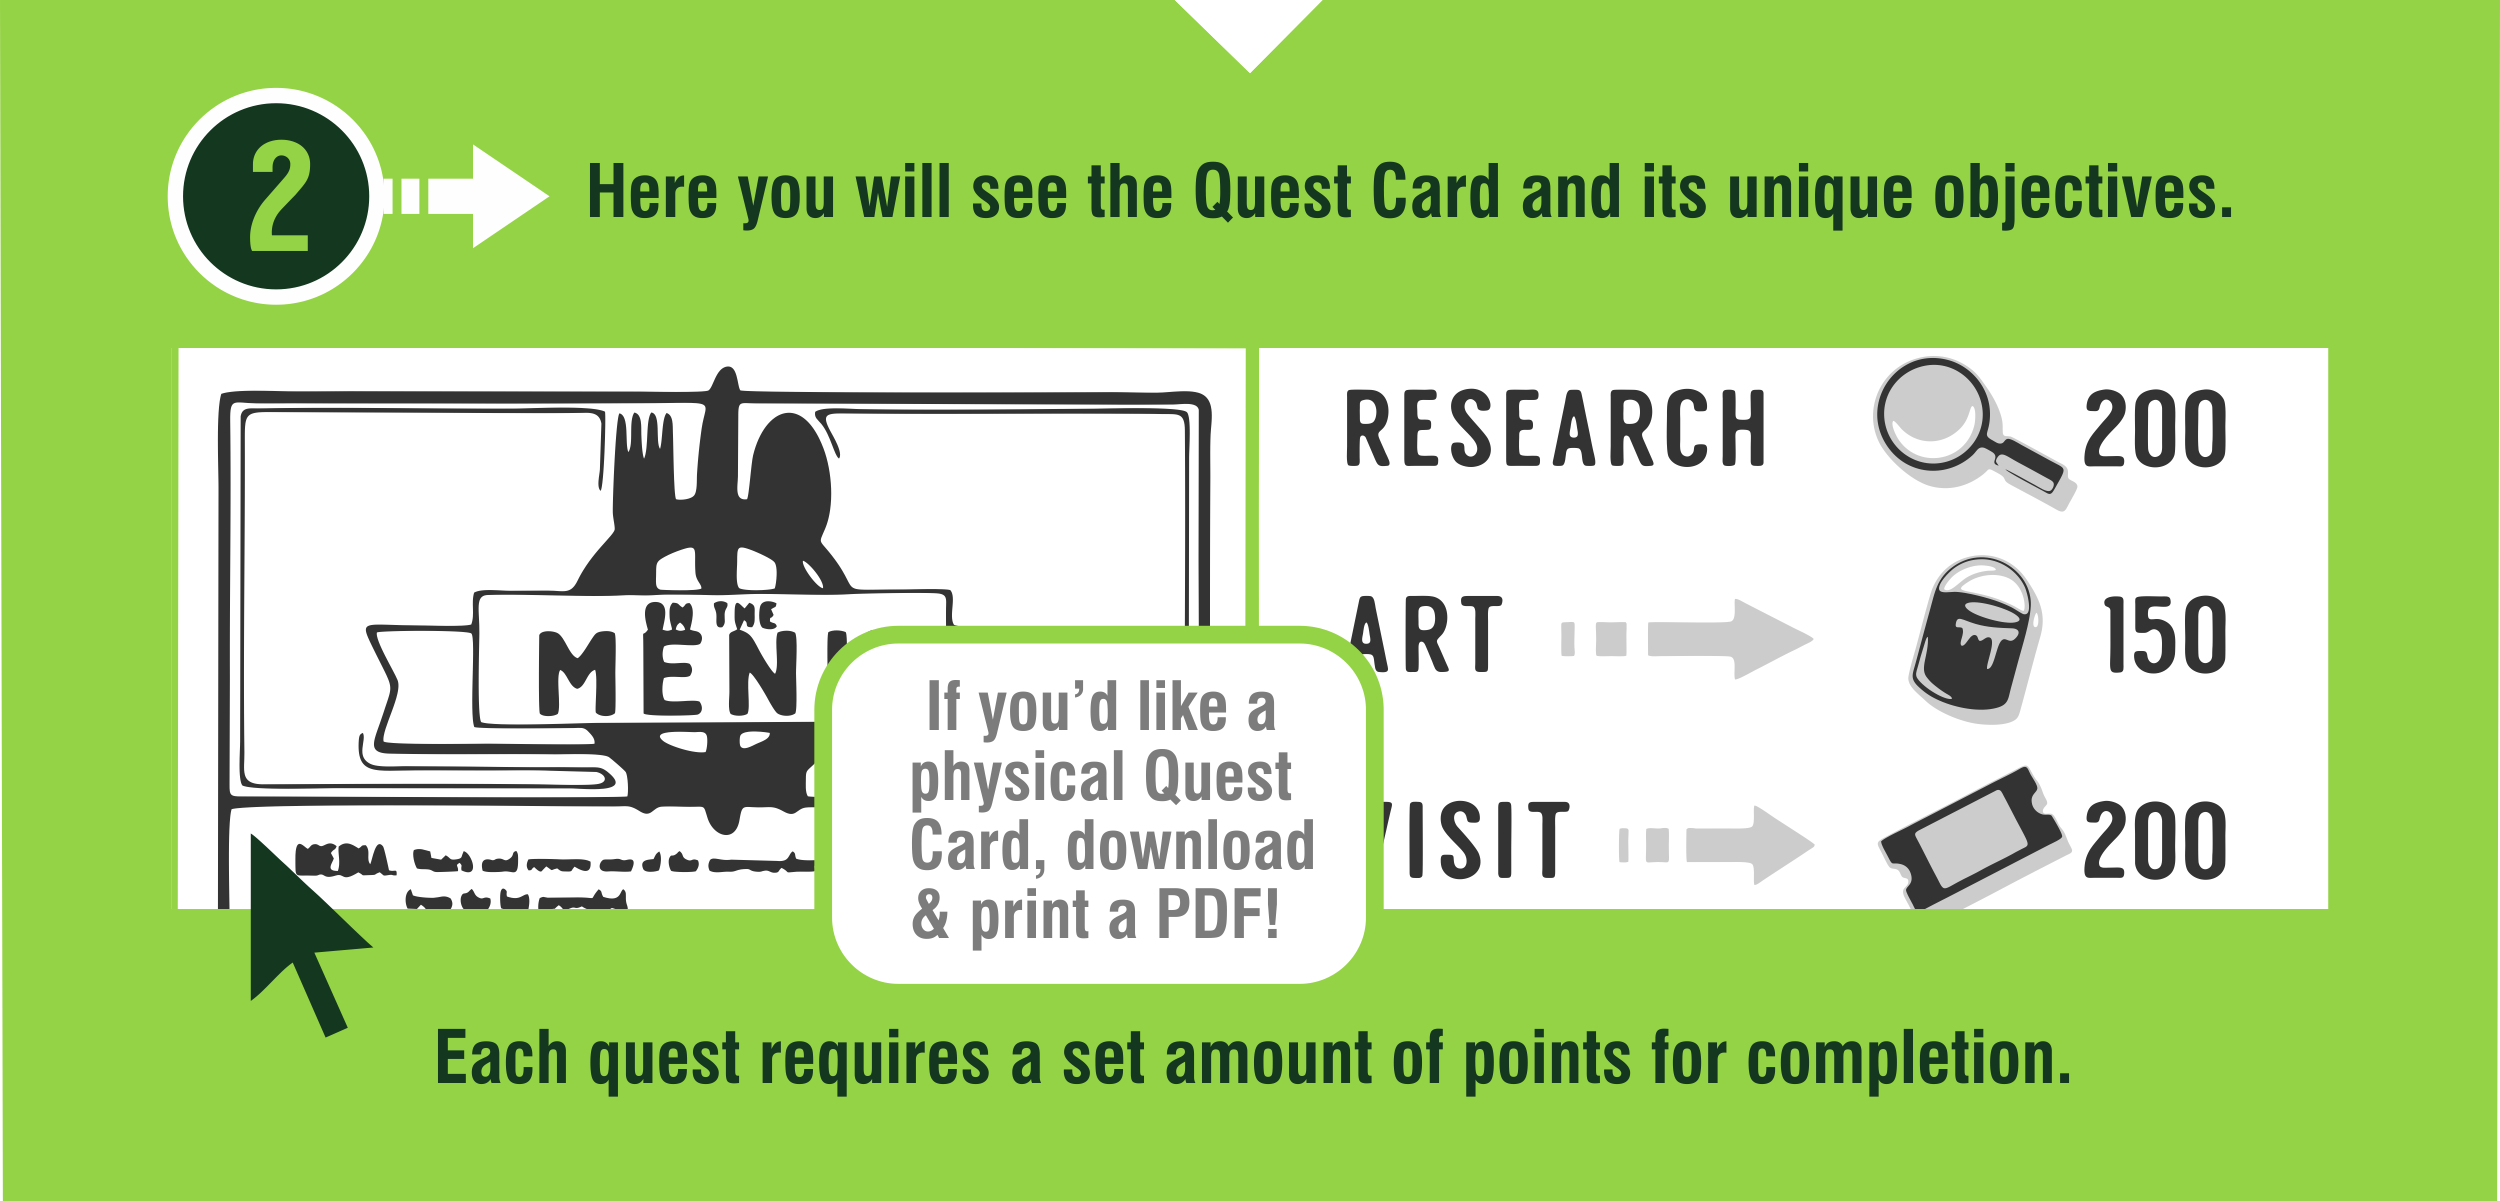 Step2QuestCardandUniqueObjectives.png